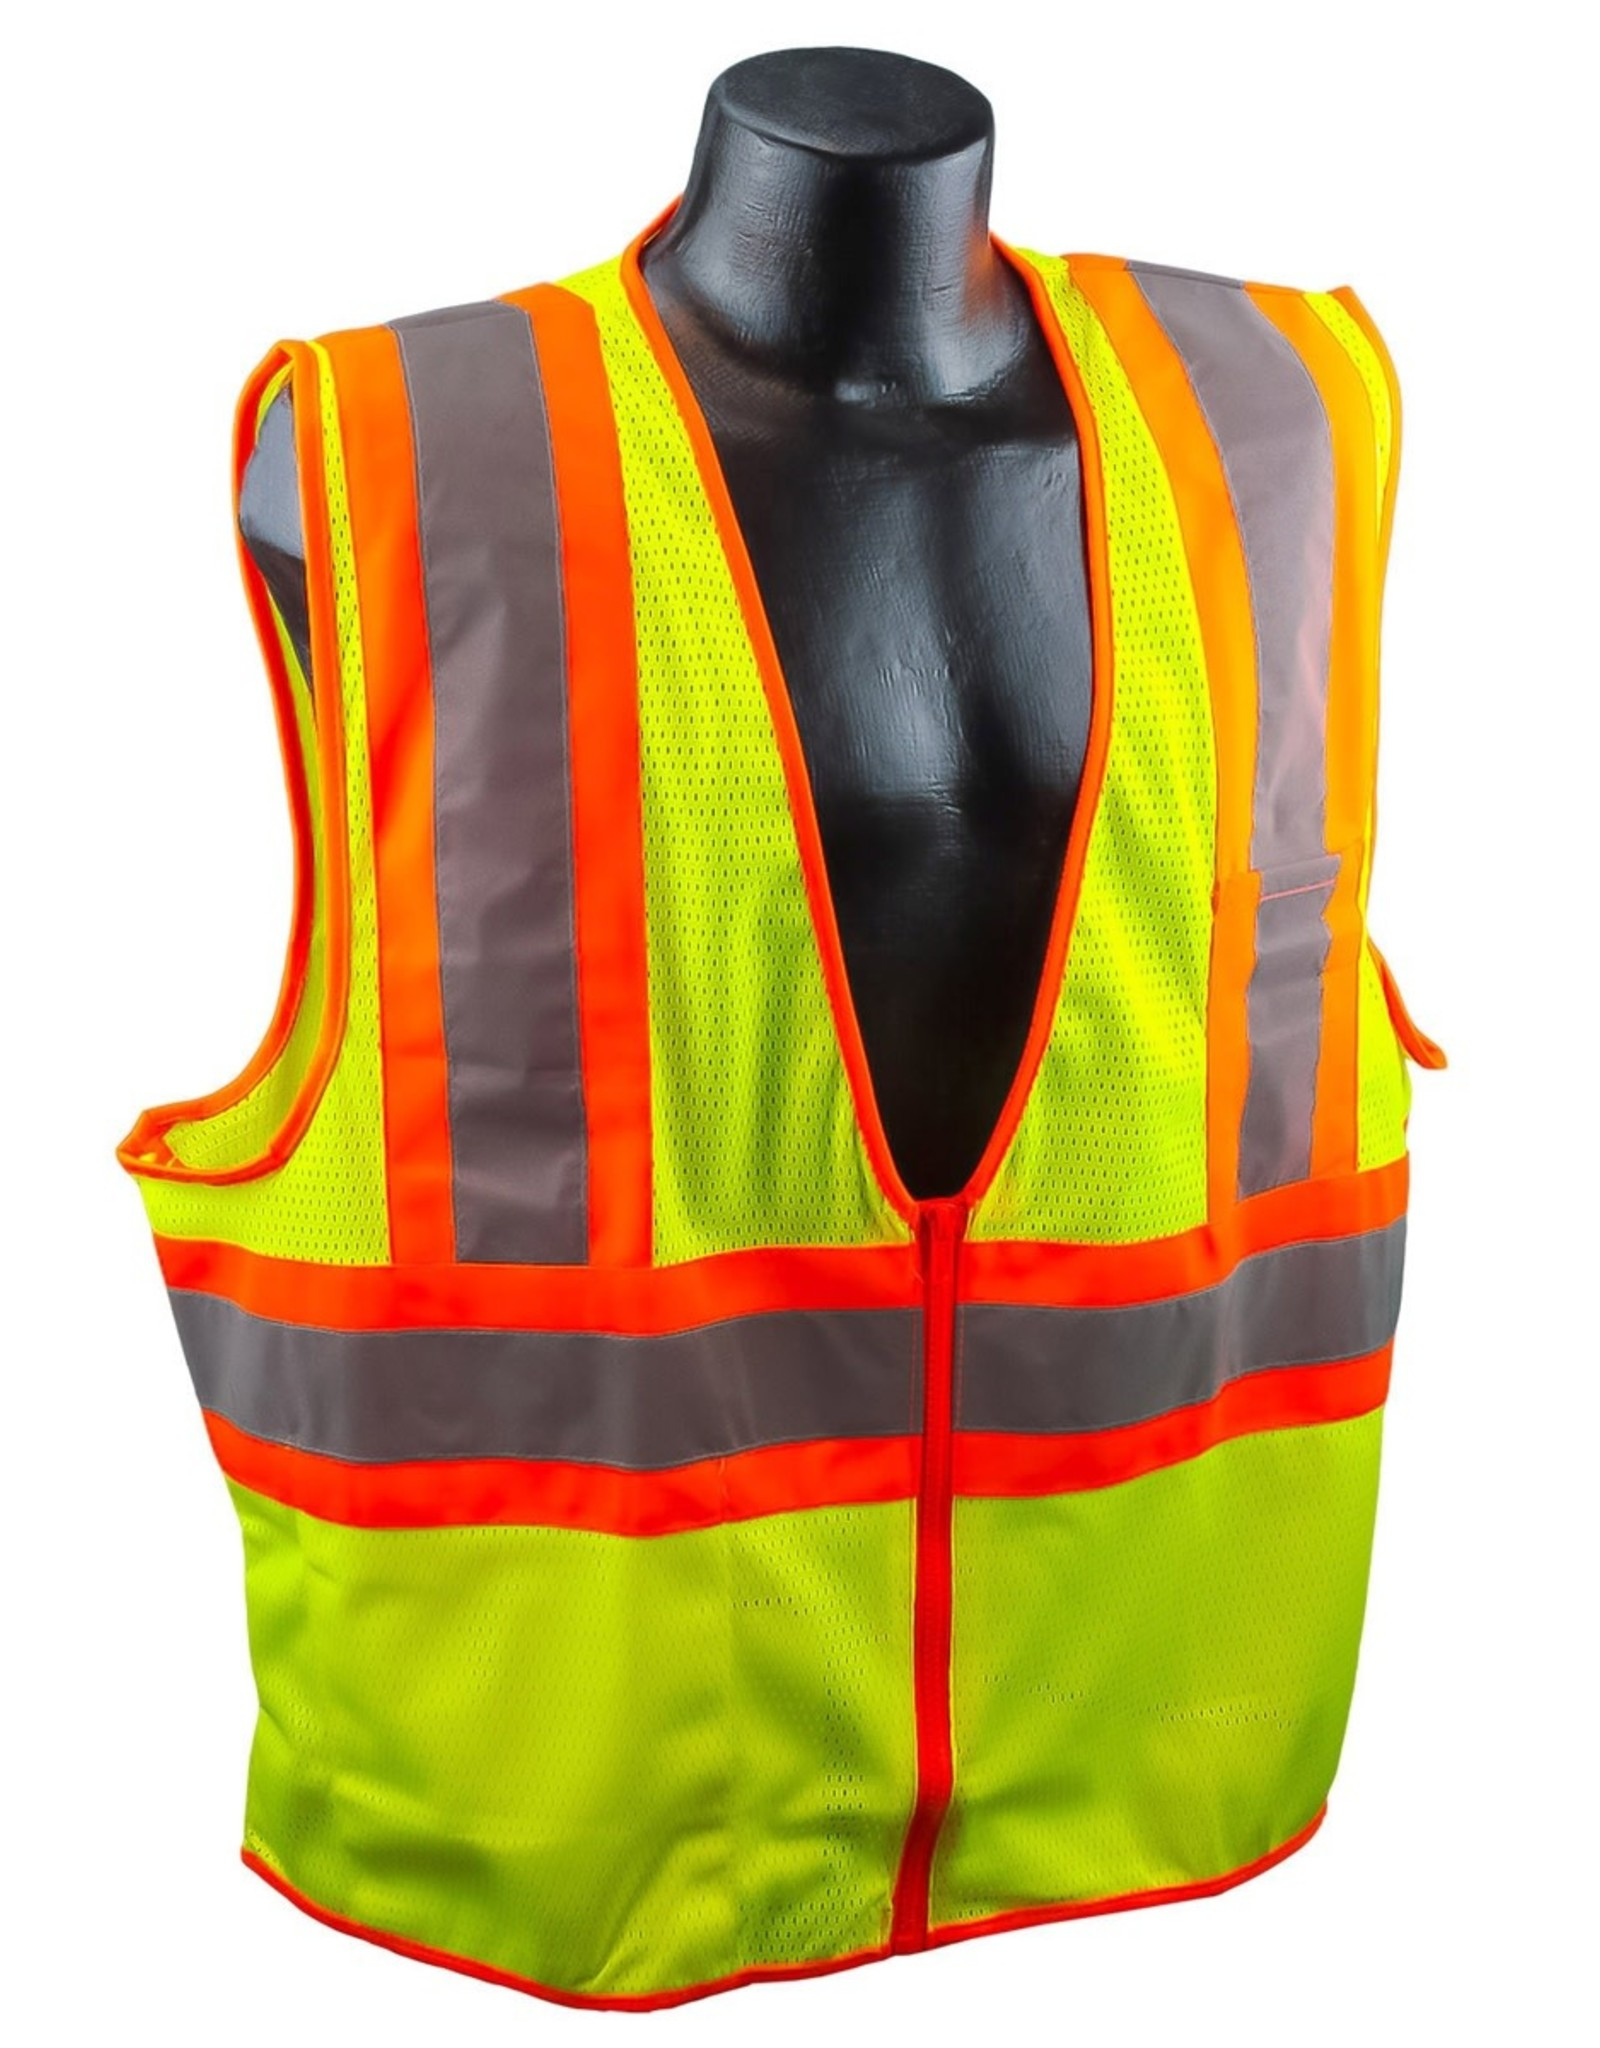 Case of 50 - Safety Vests SZ. Large - Yellow Mesh Class II, Reflective Tape, SZ. M - 4XL